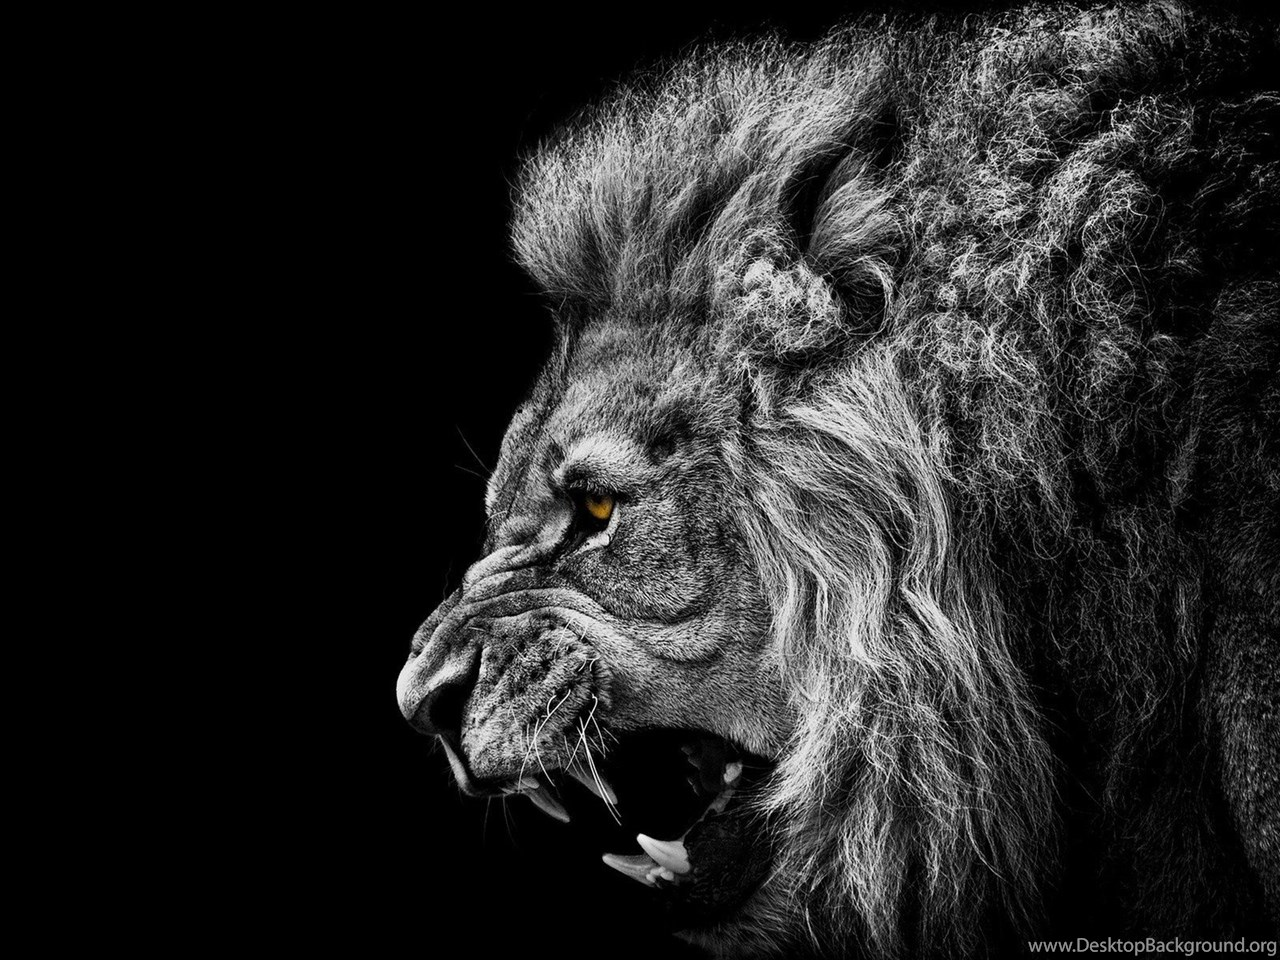 Lion wallpaper hd black and white